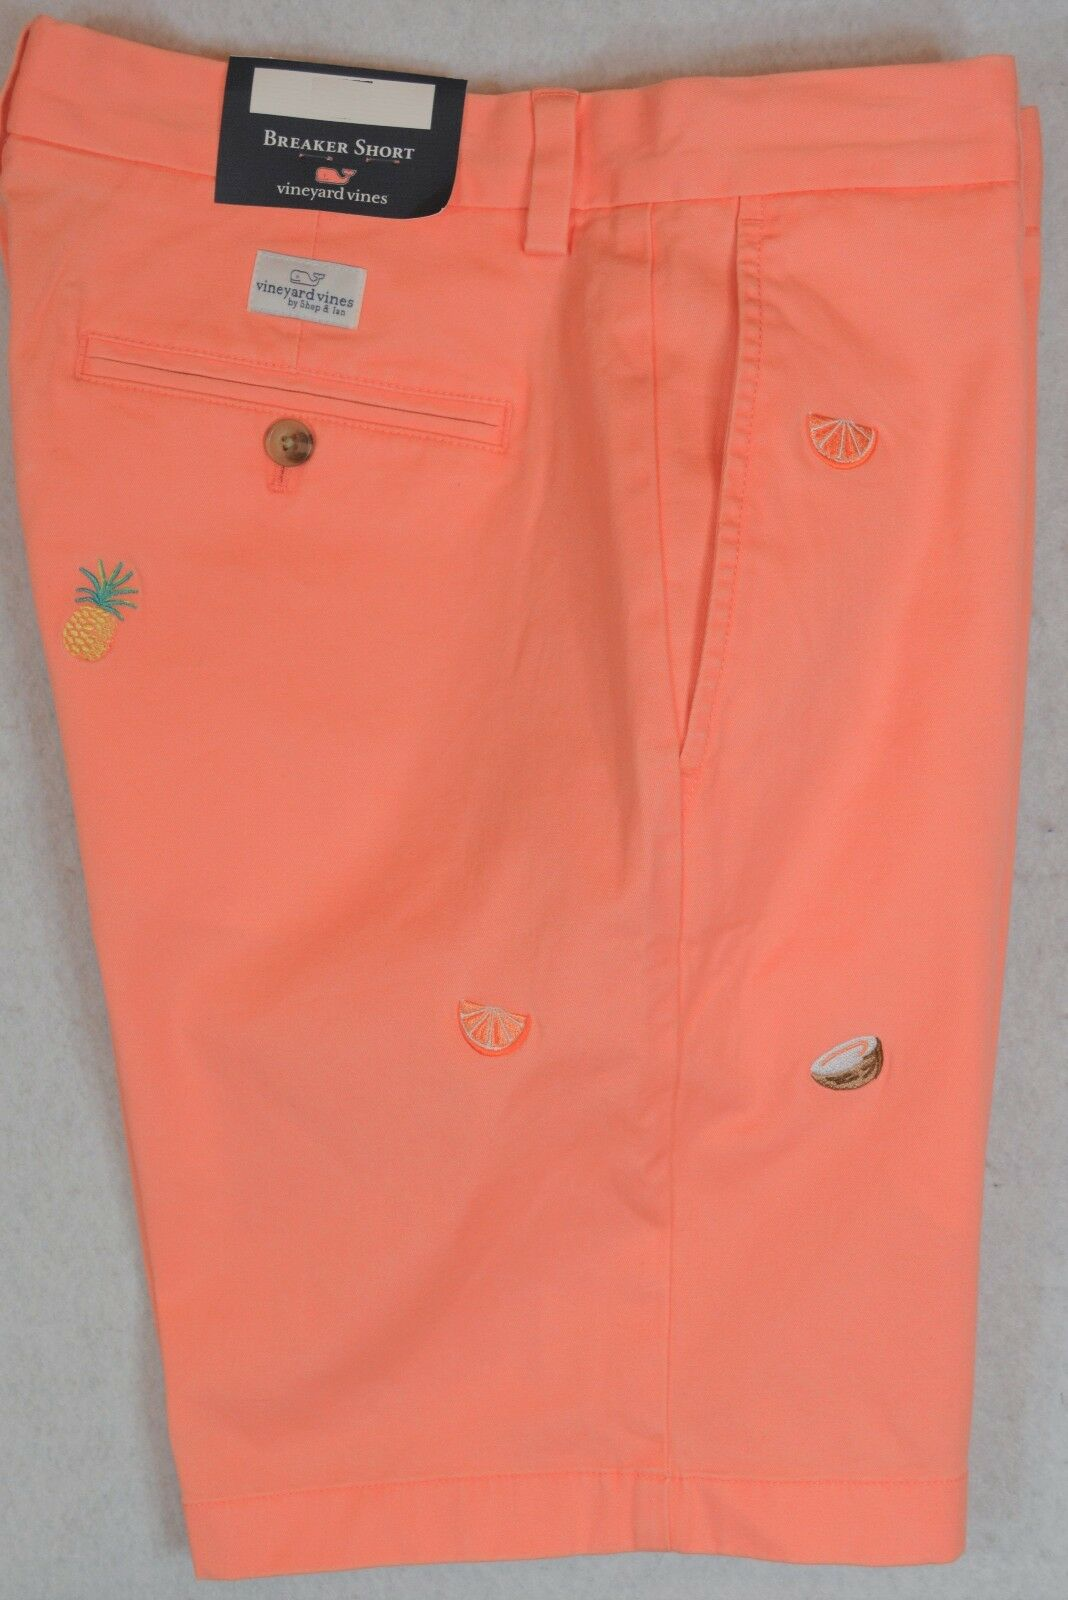 Vineyard Vines Breaker Short Tropical Drink Embroidered Peach Toucan 30 32 NWT